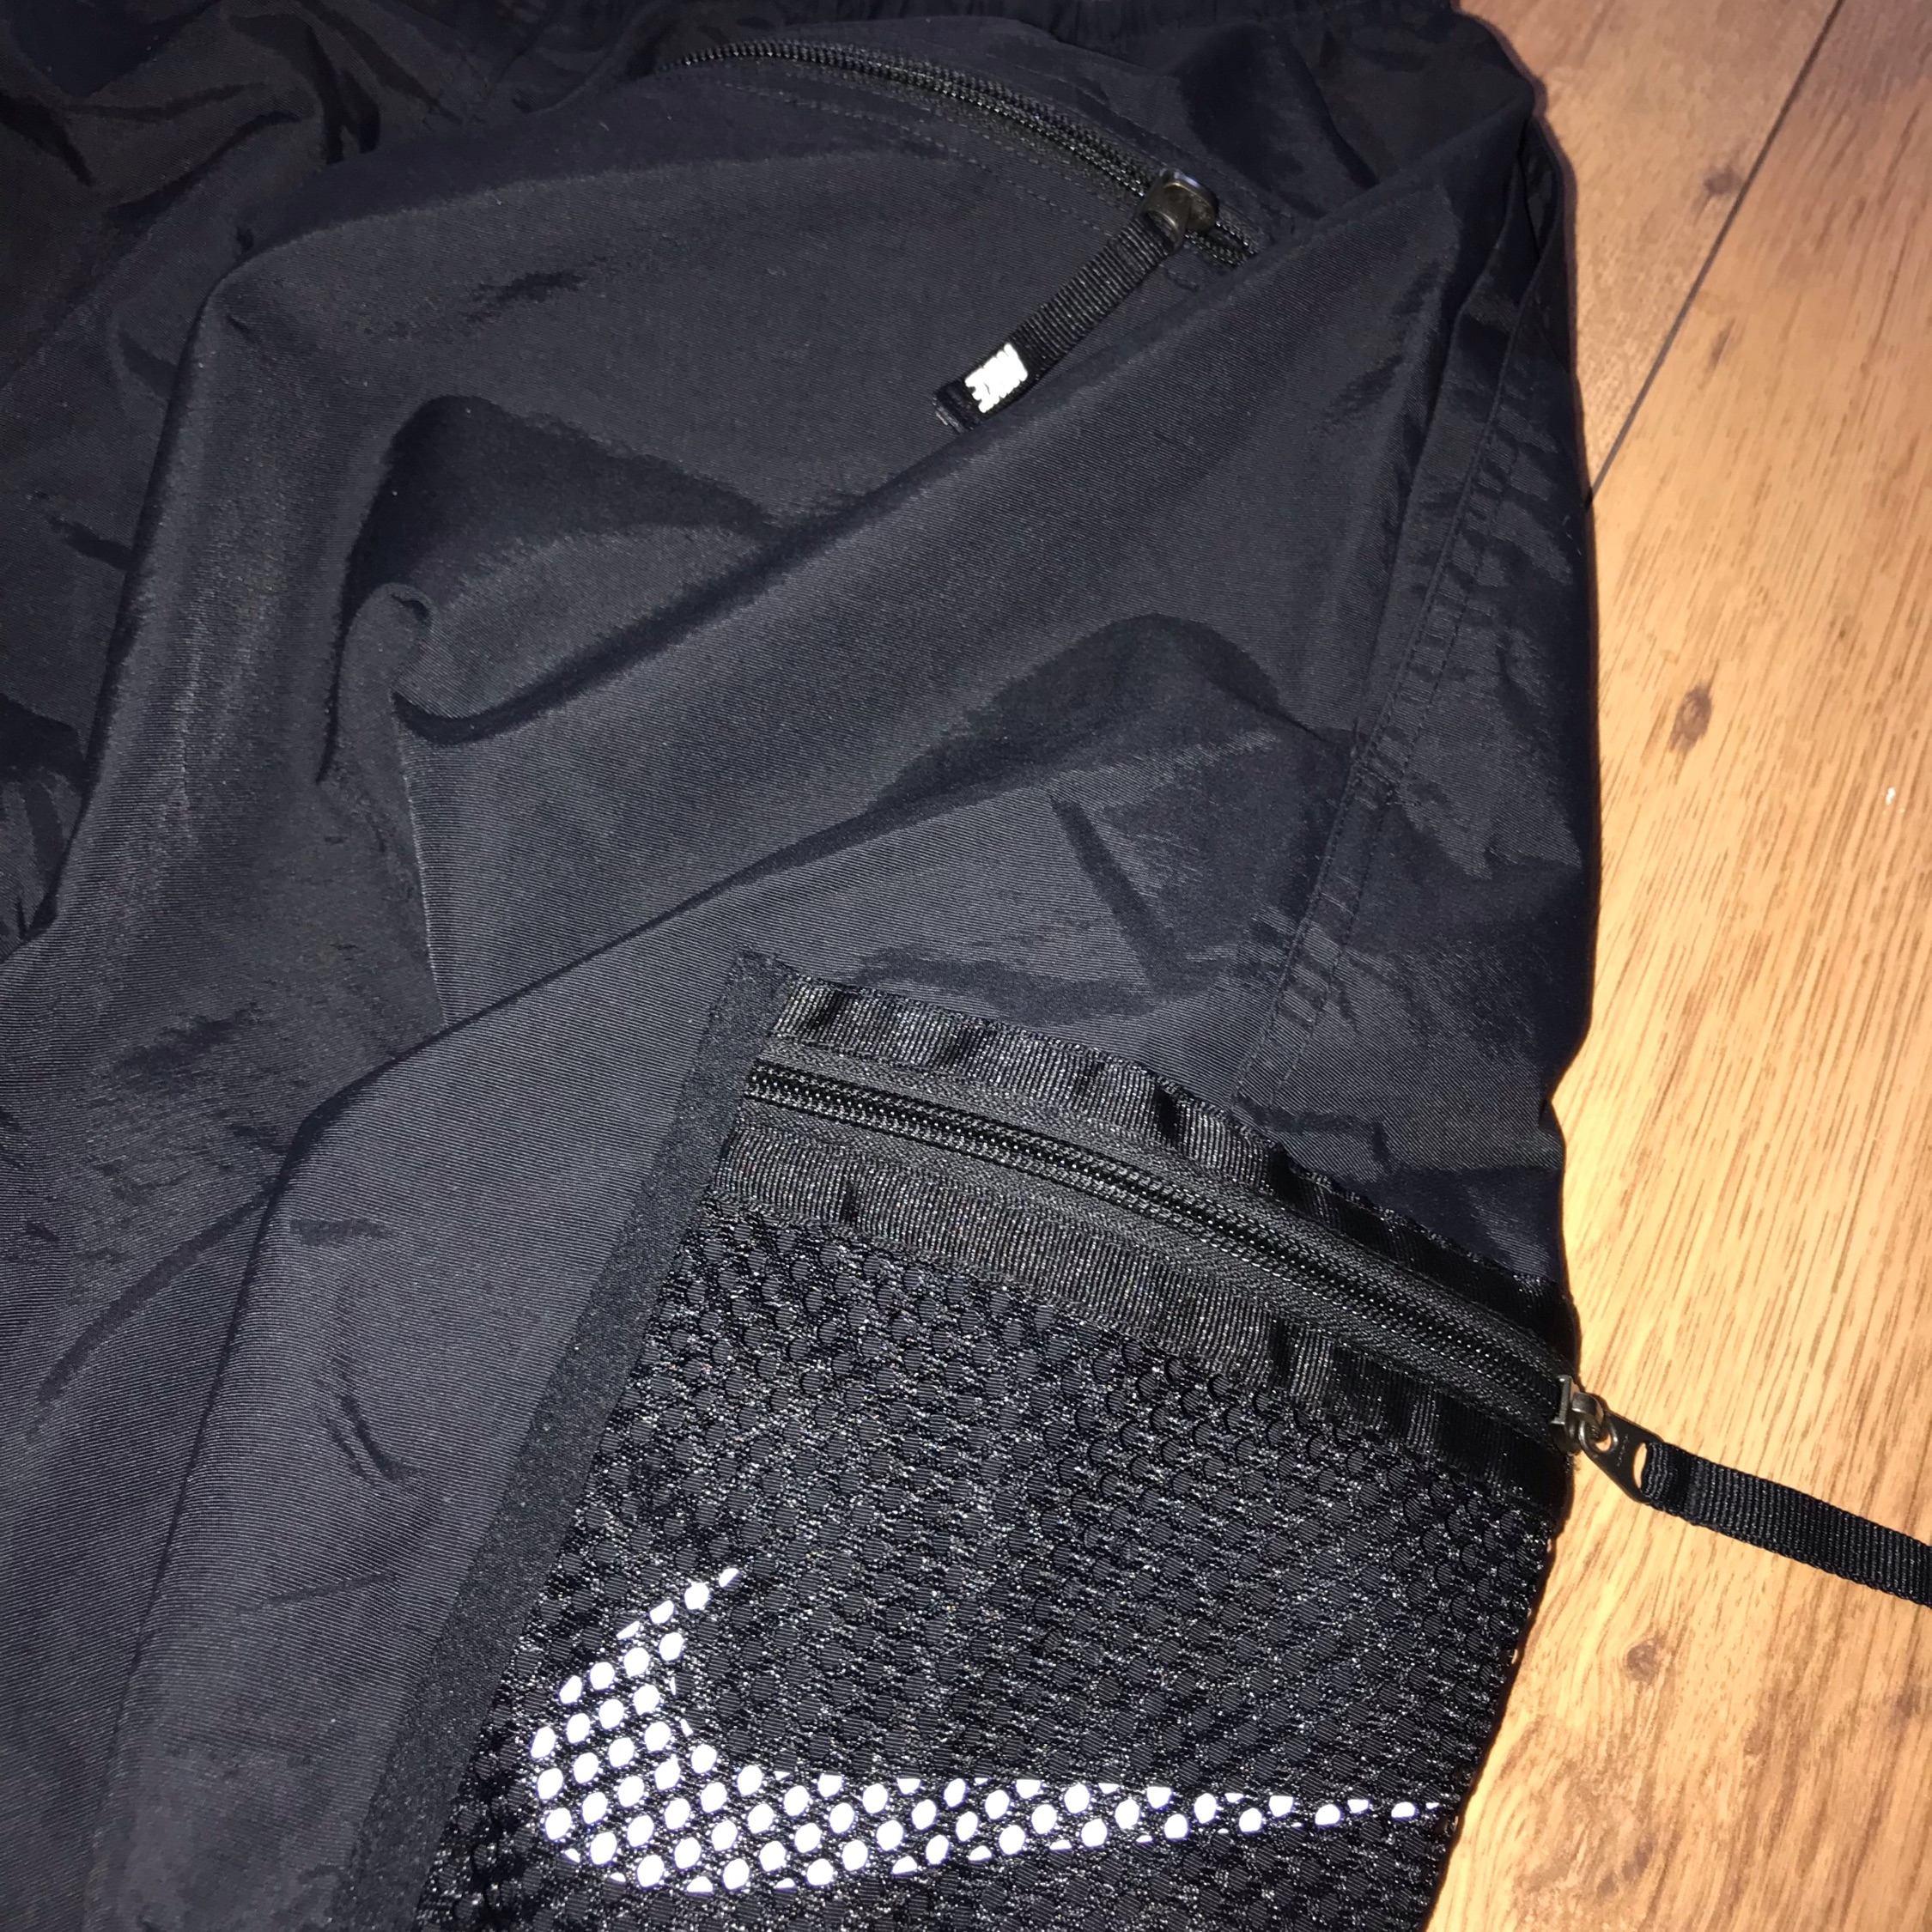 Fw17 Supreme X Nike Humara Trail Running Pants